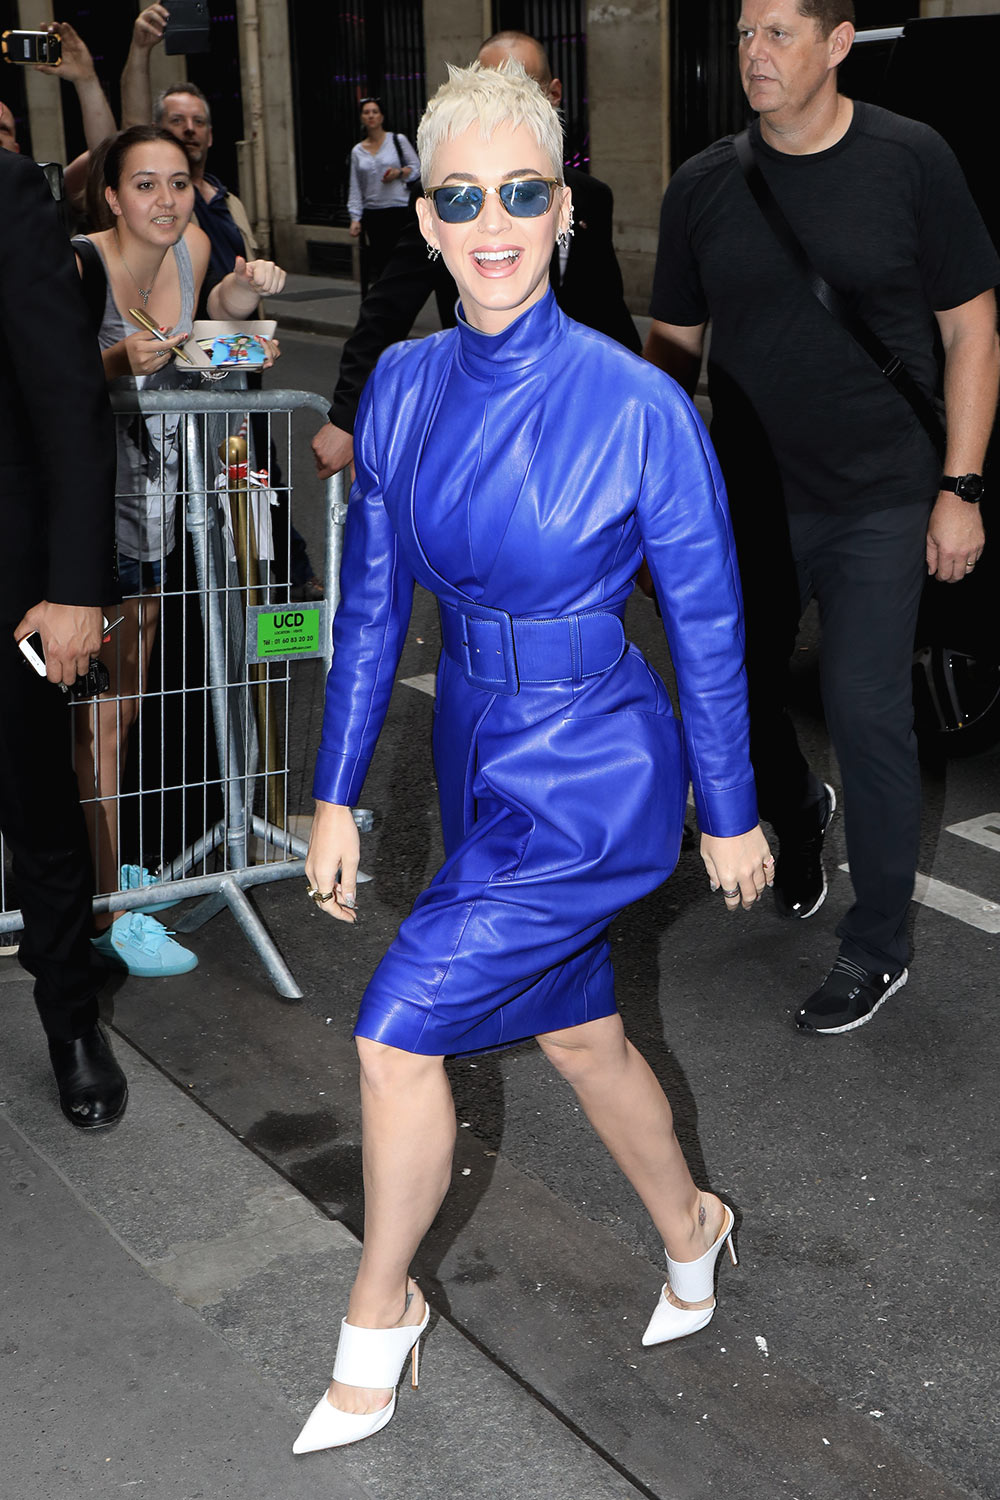 Katy Perry out & about in Paris